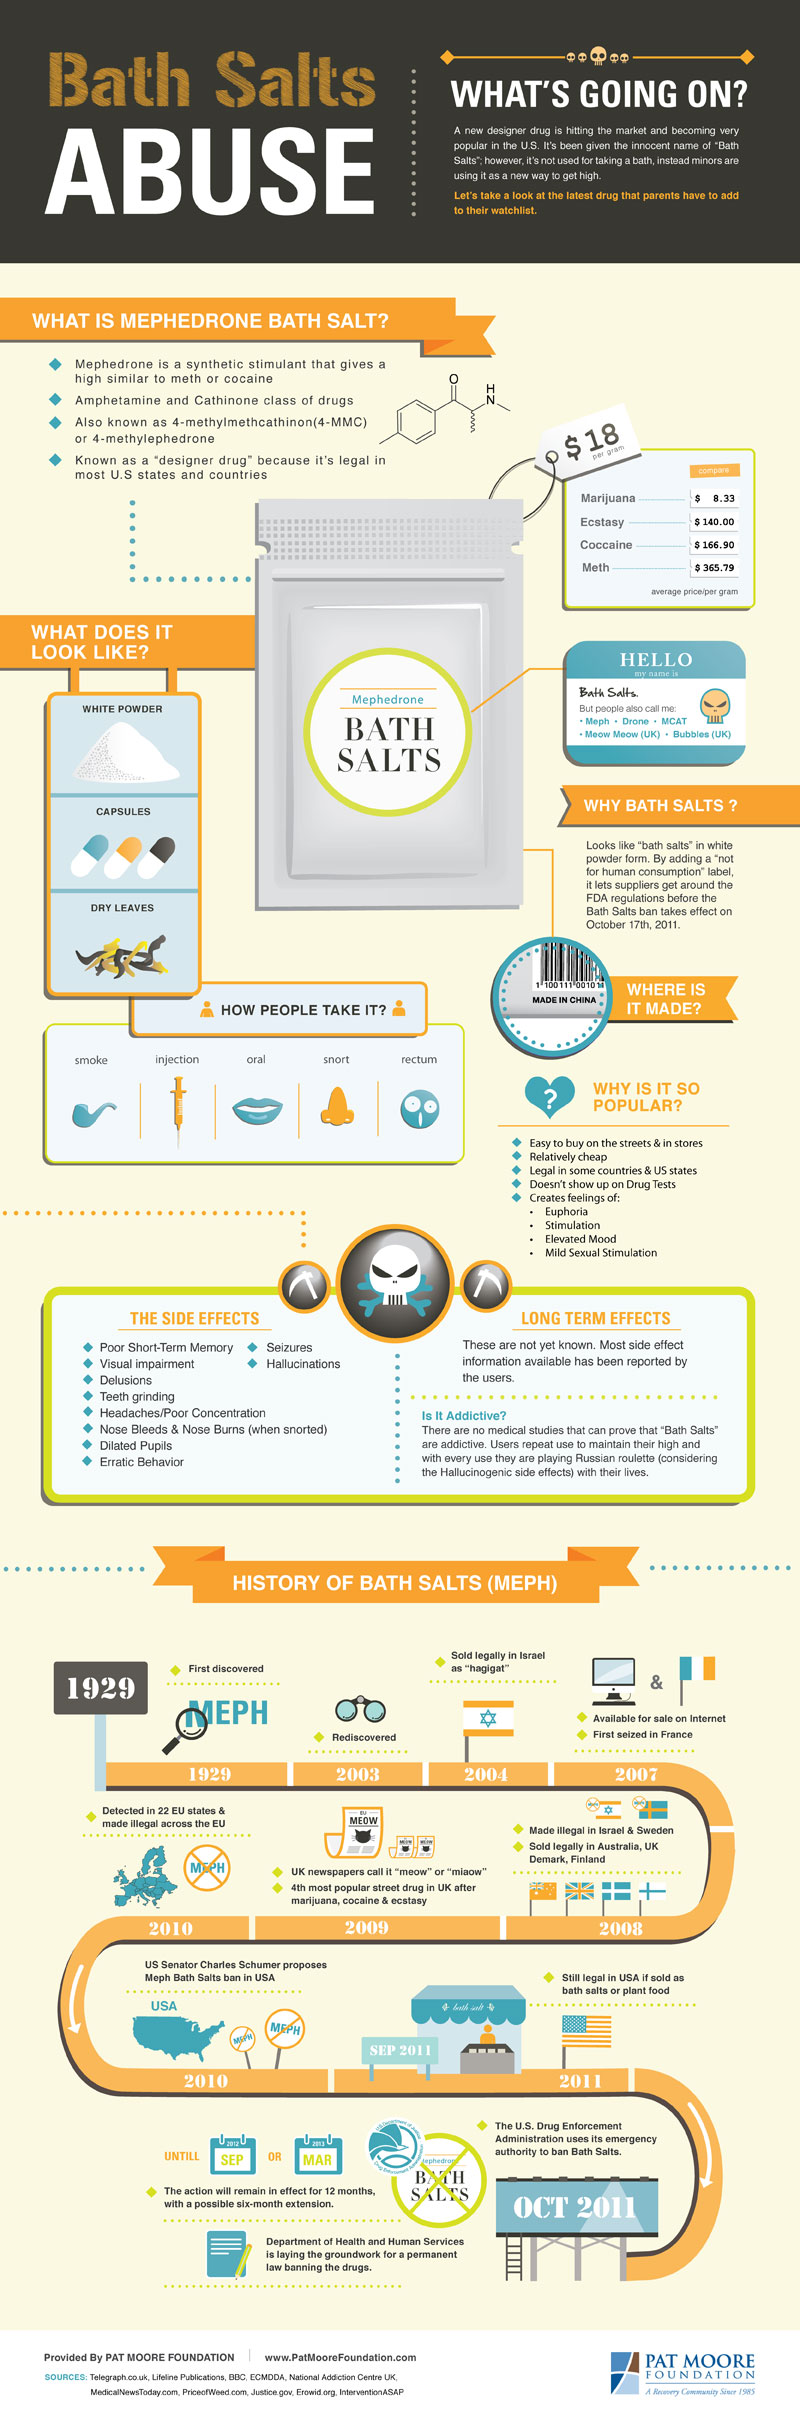 Bath Salt Abuse Infographic, created by Pat Moore Foundation, a drug rehab